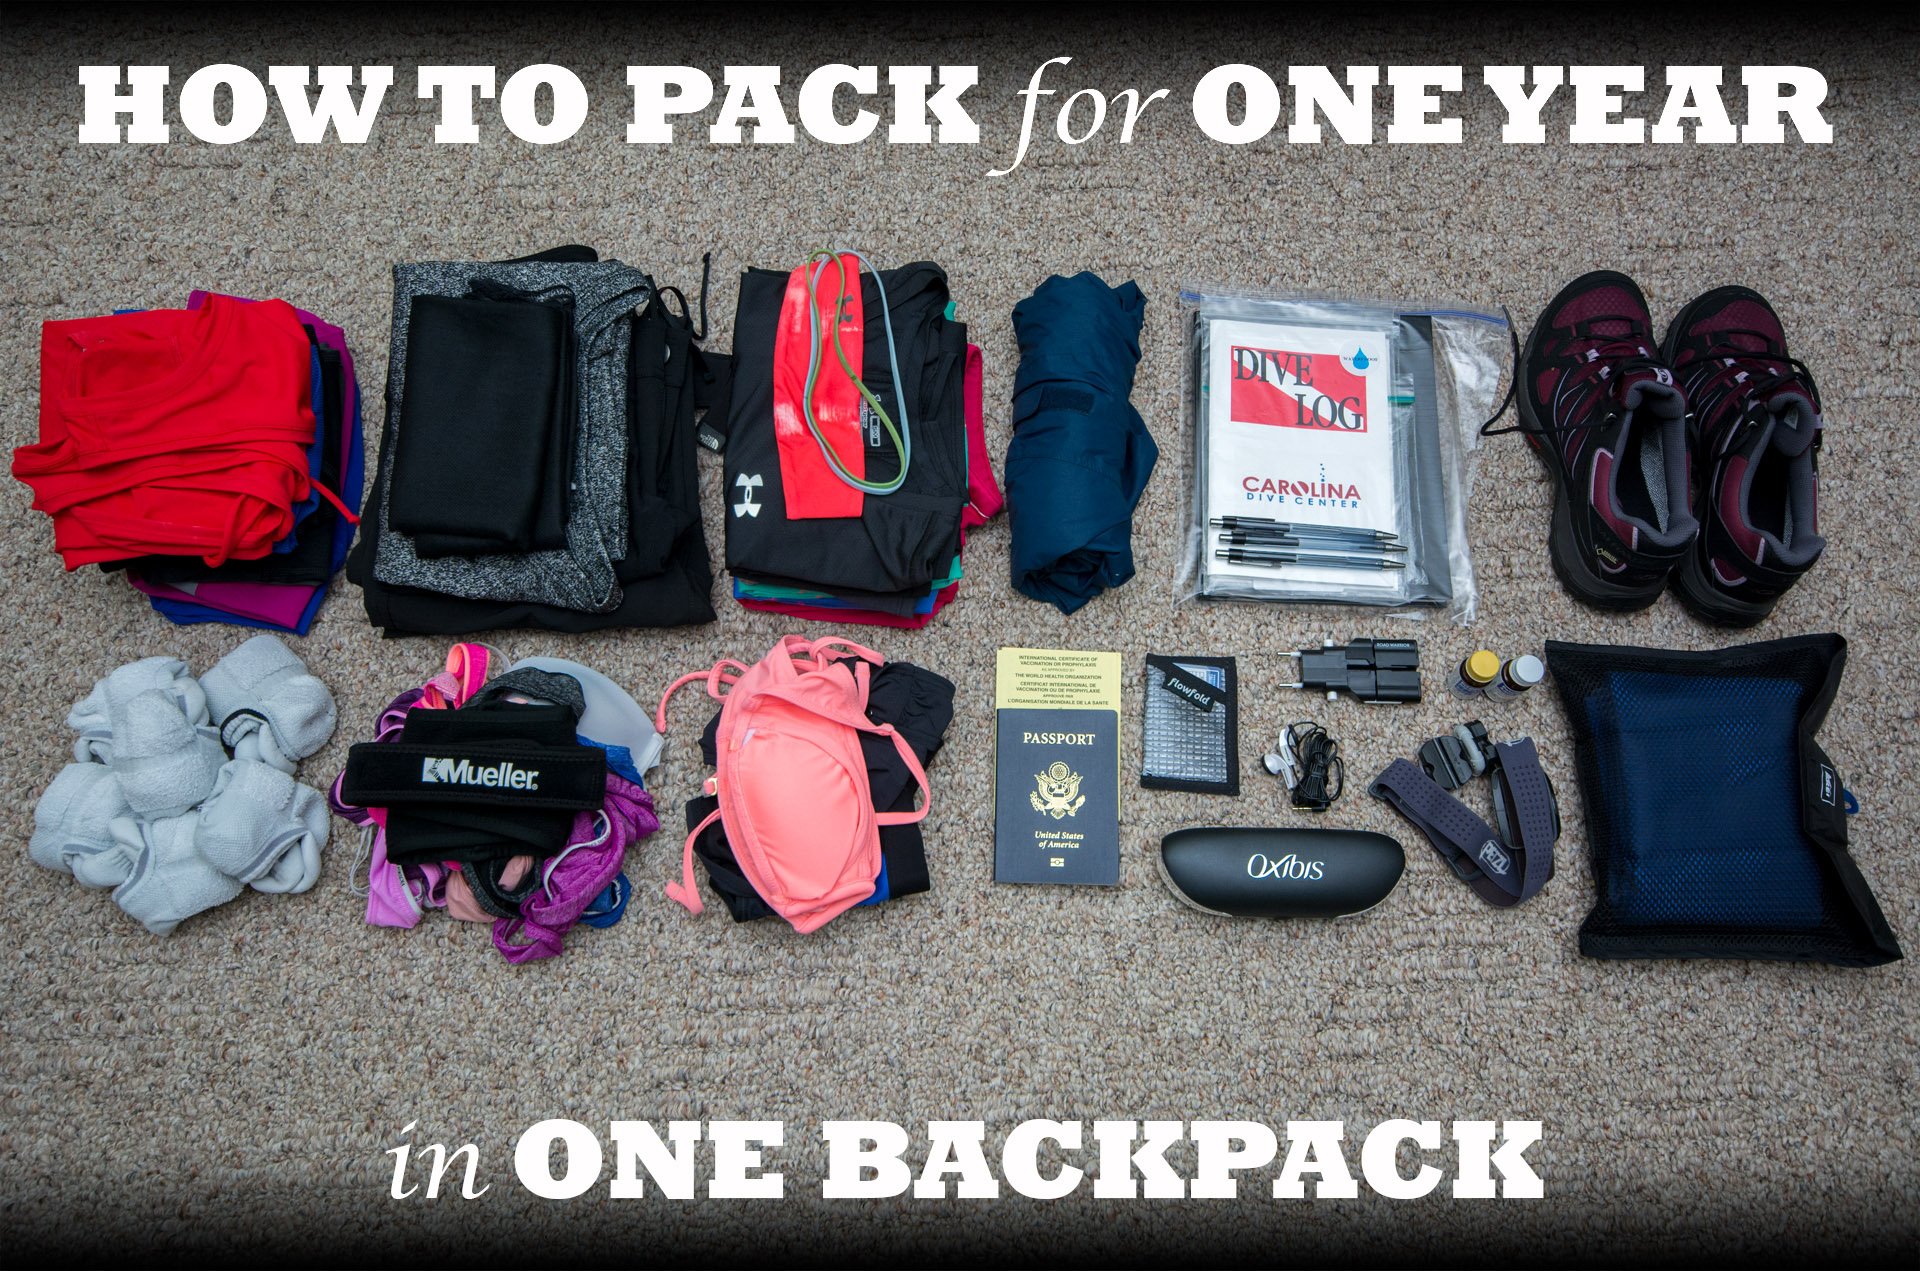 How to Pack for One Year in One Backpack